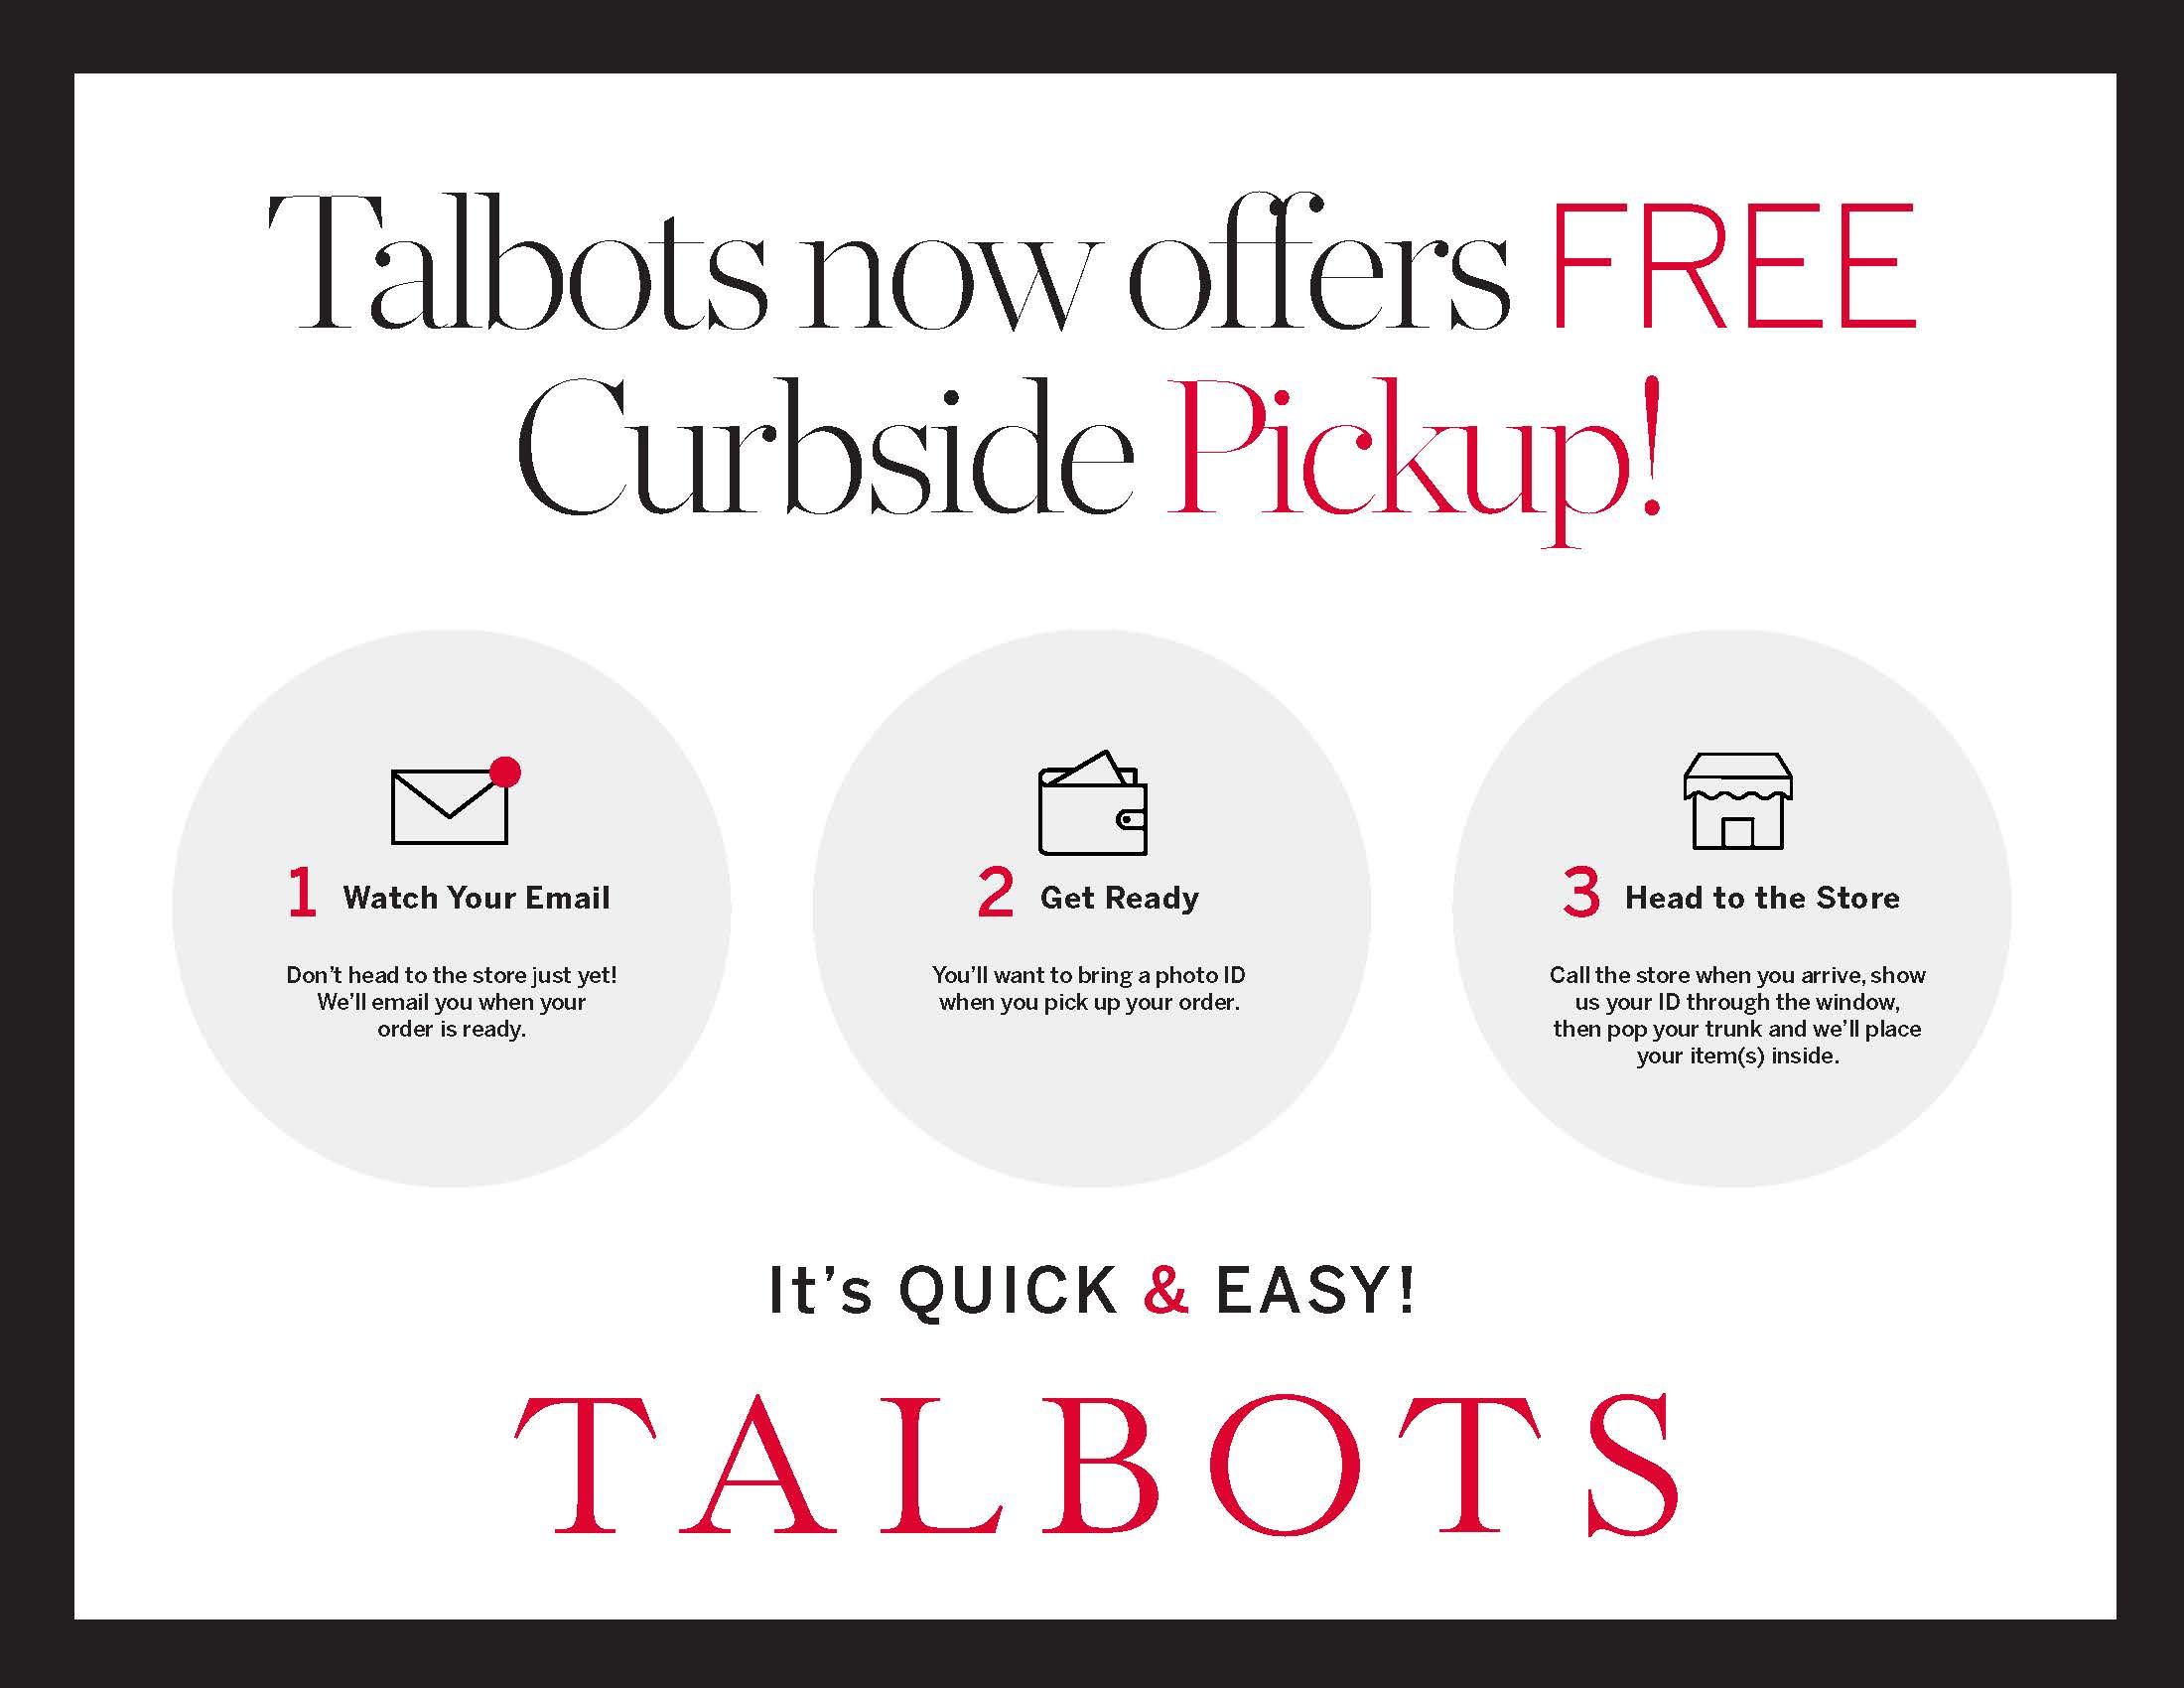 Free Pick-up at Talbots